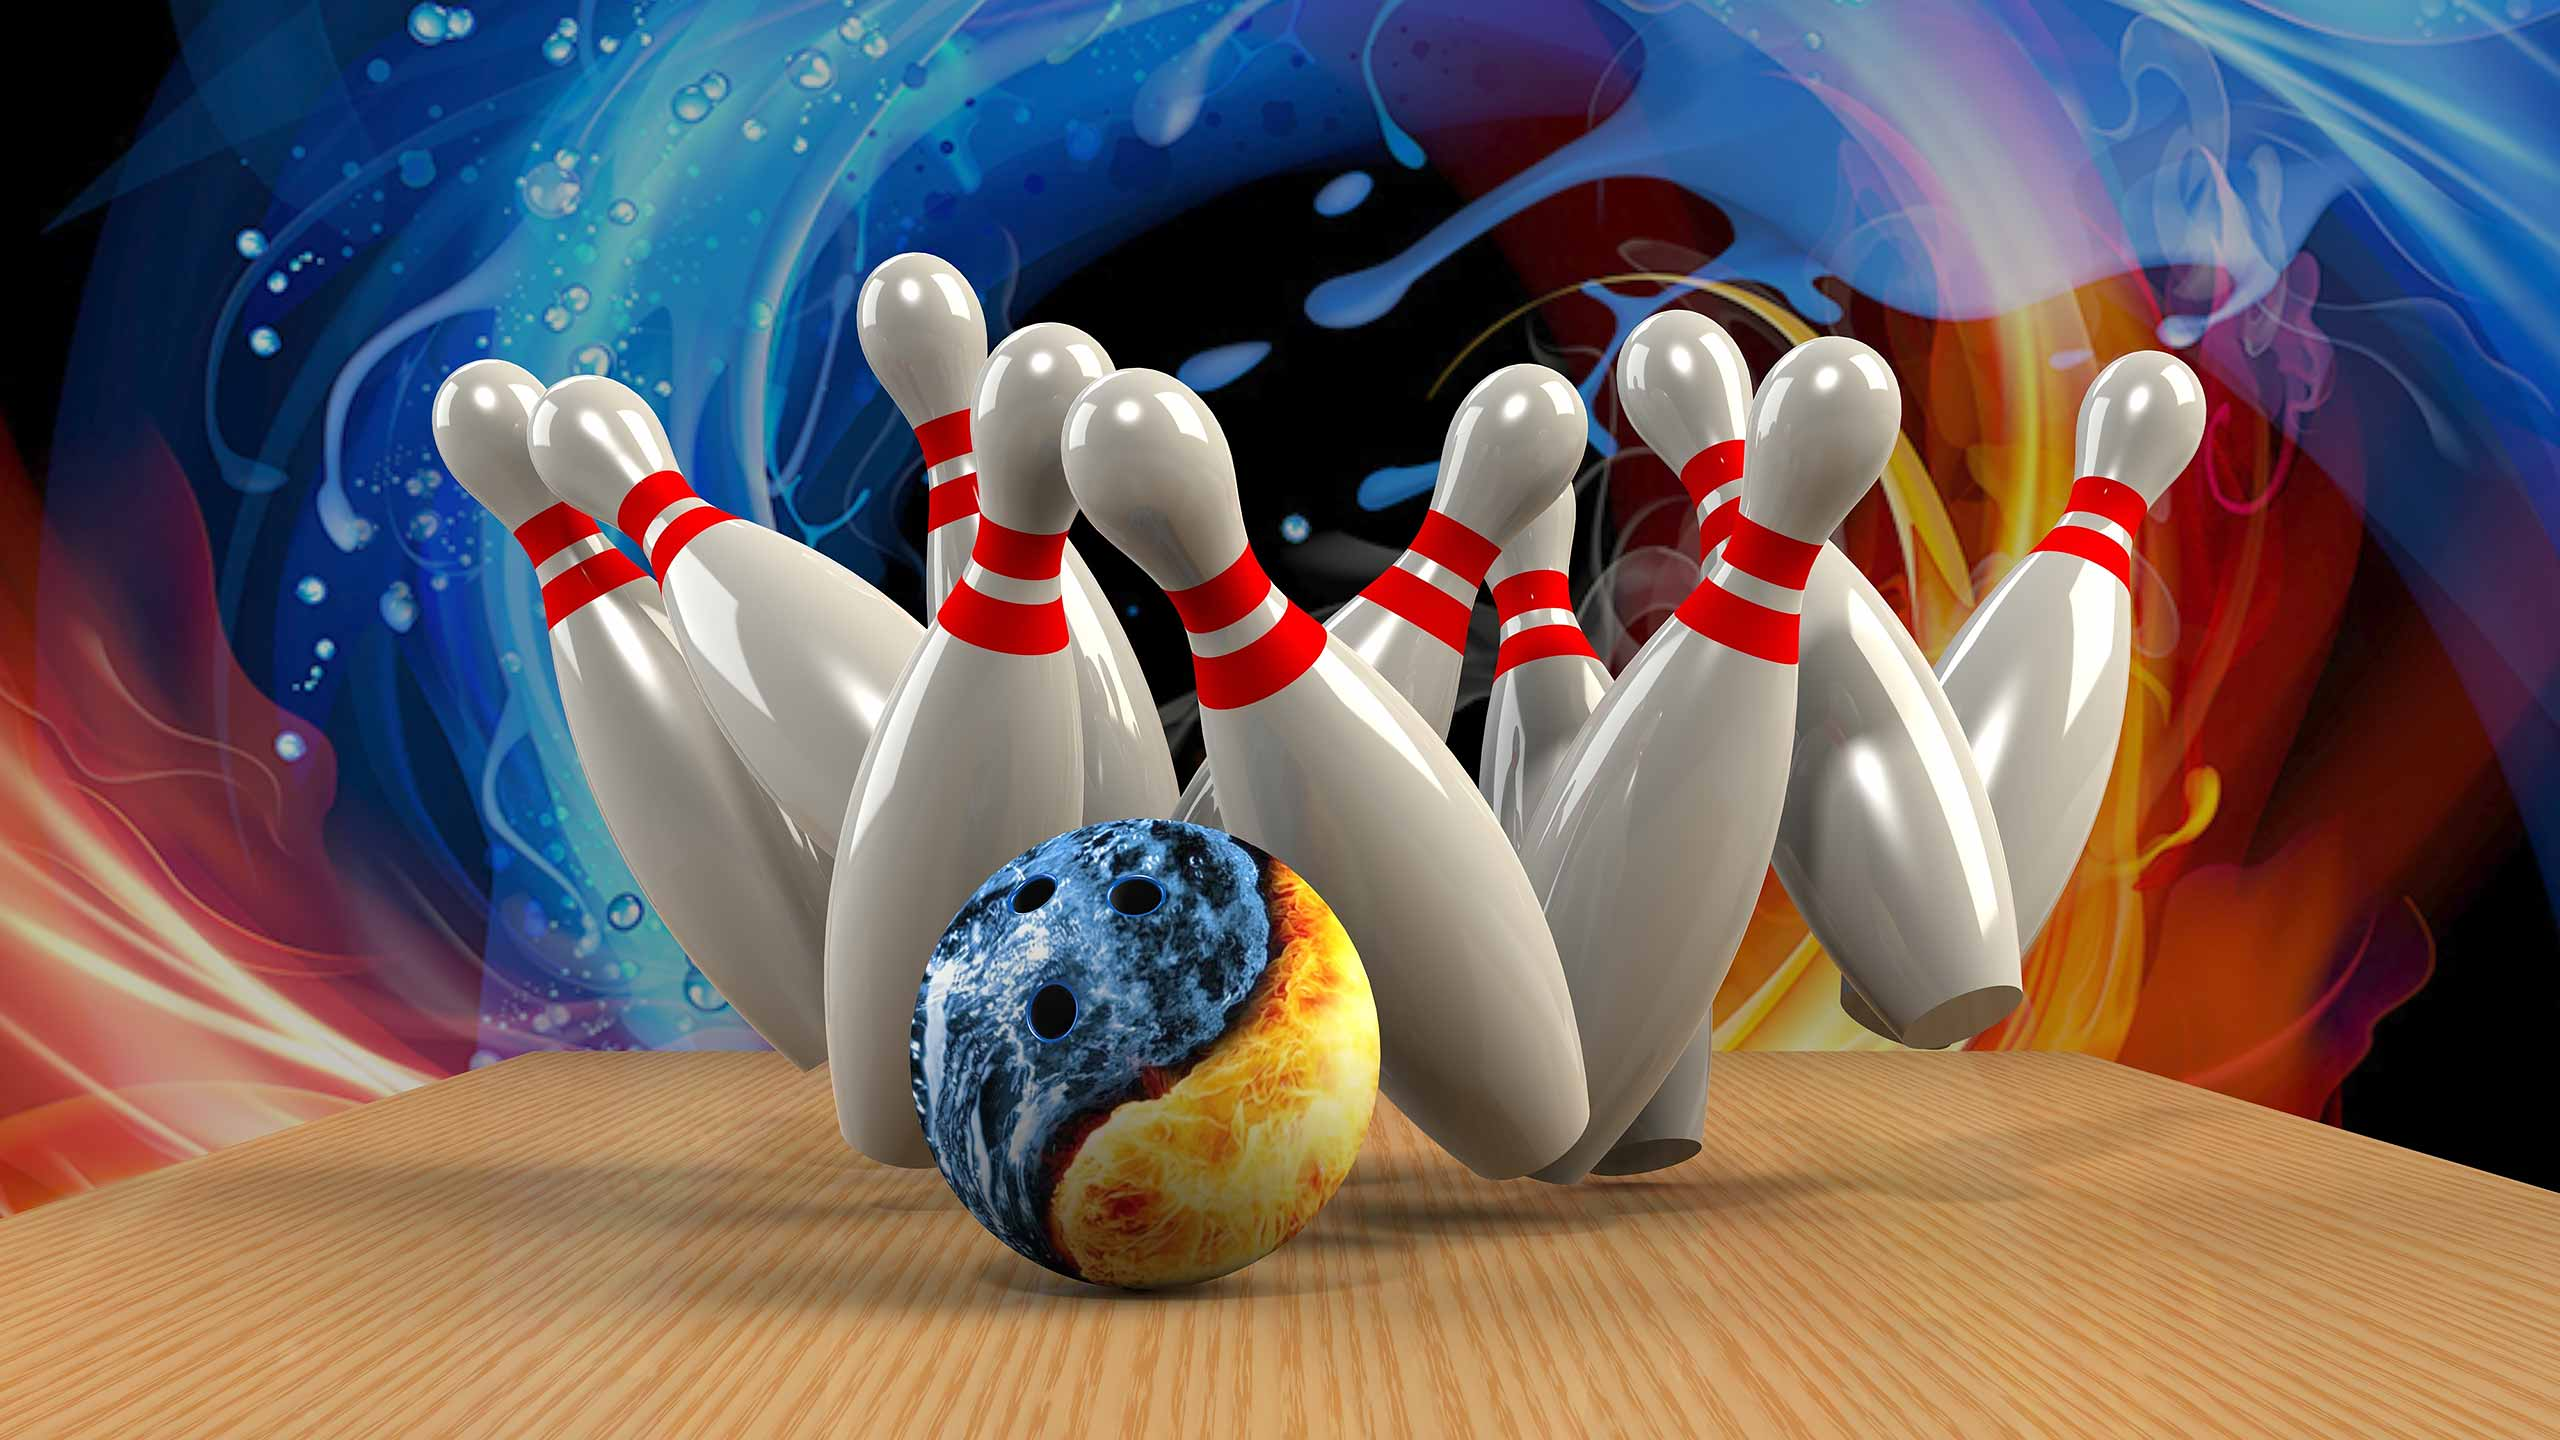 Bowling Market Size and Forecast, Drivers, Challenges, Trends, and More